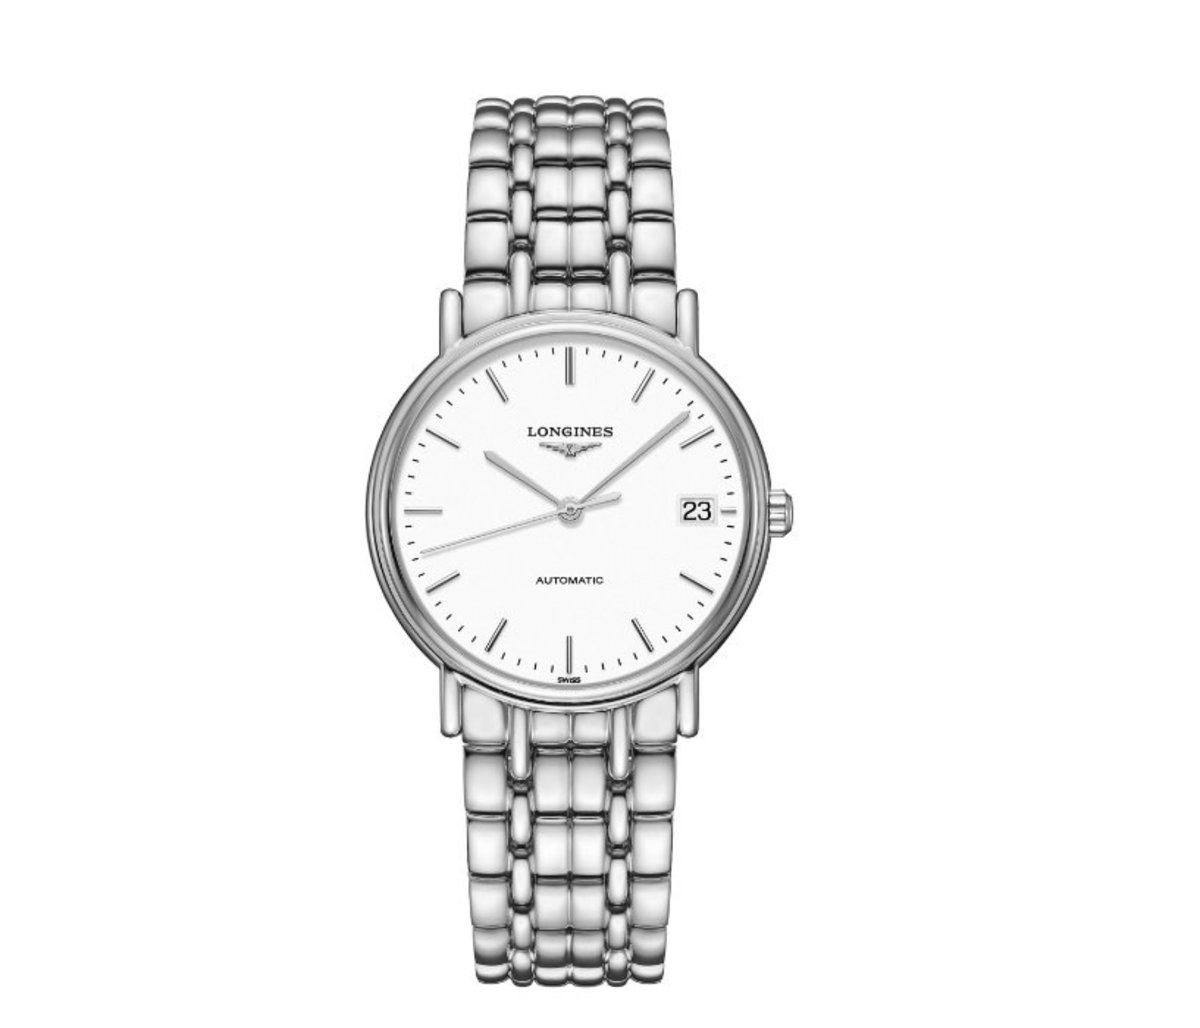 Longines - Presence Automatic Ladie's Steel Watch - White (parallel goods)